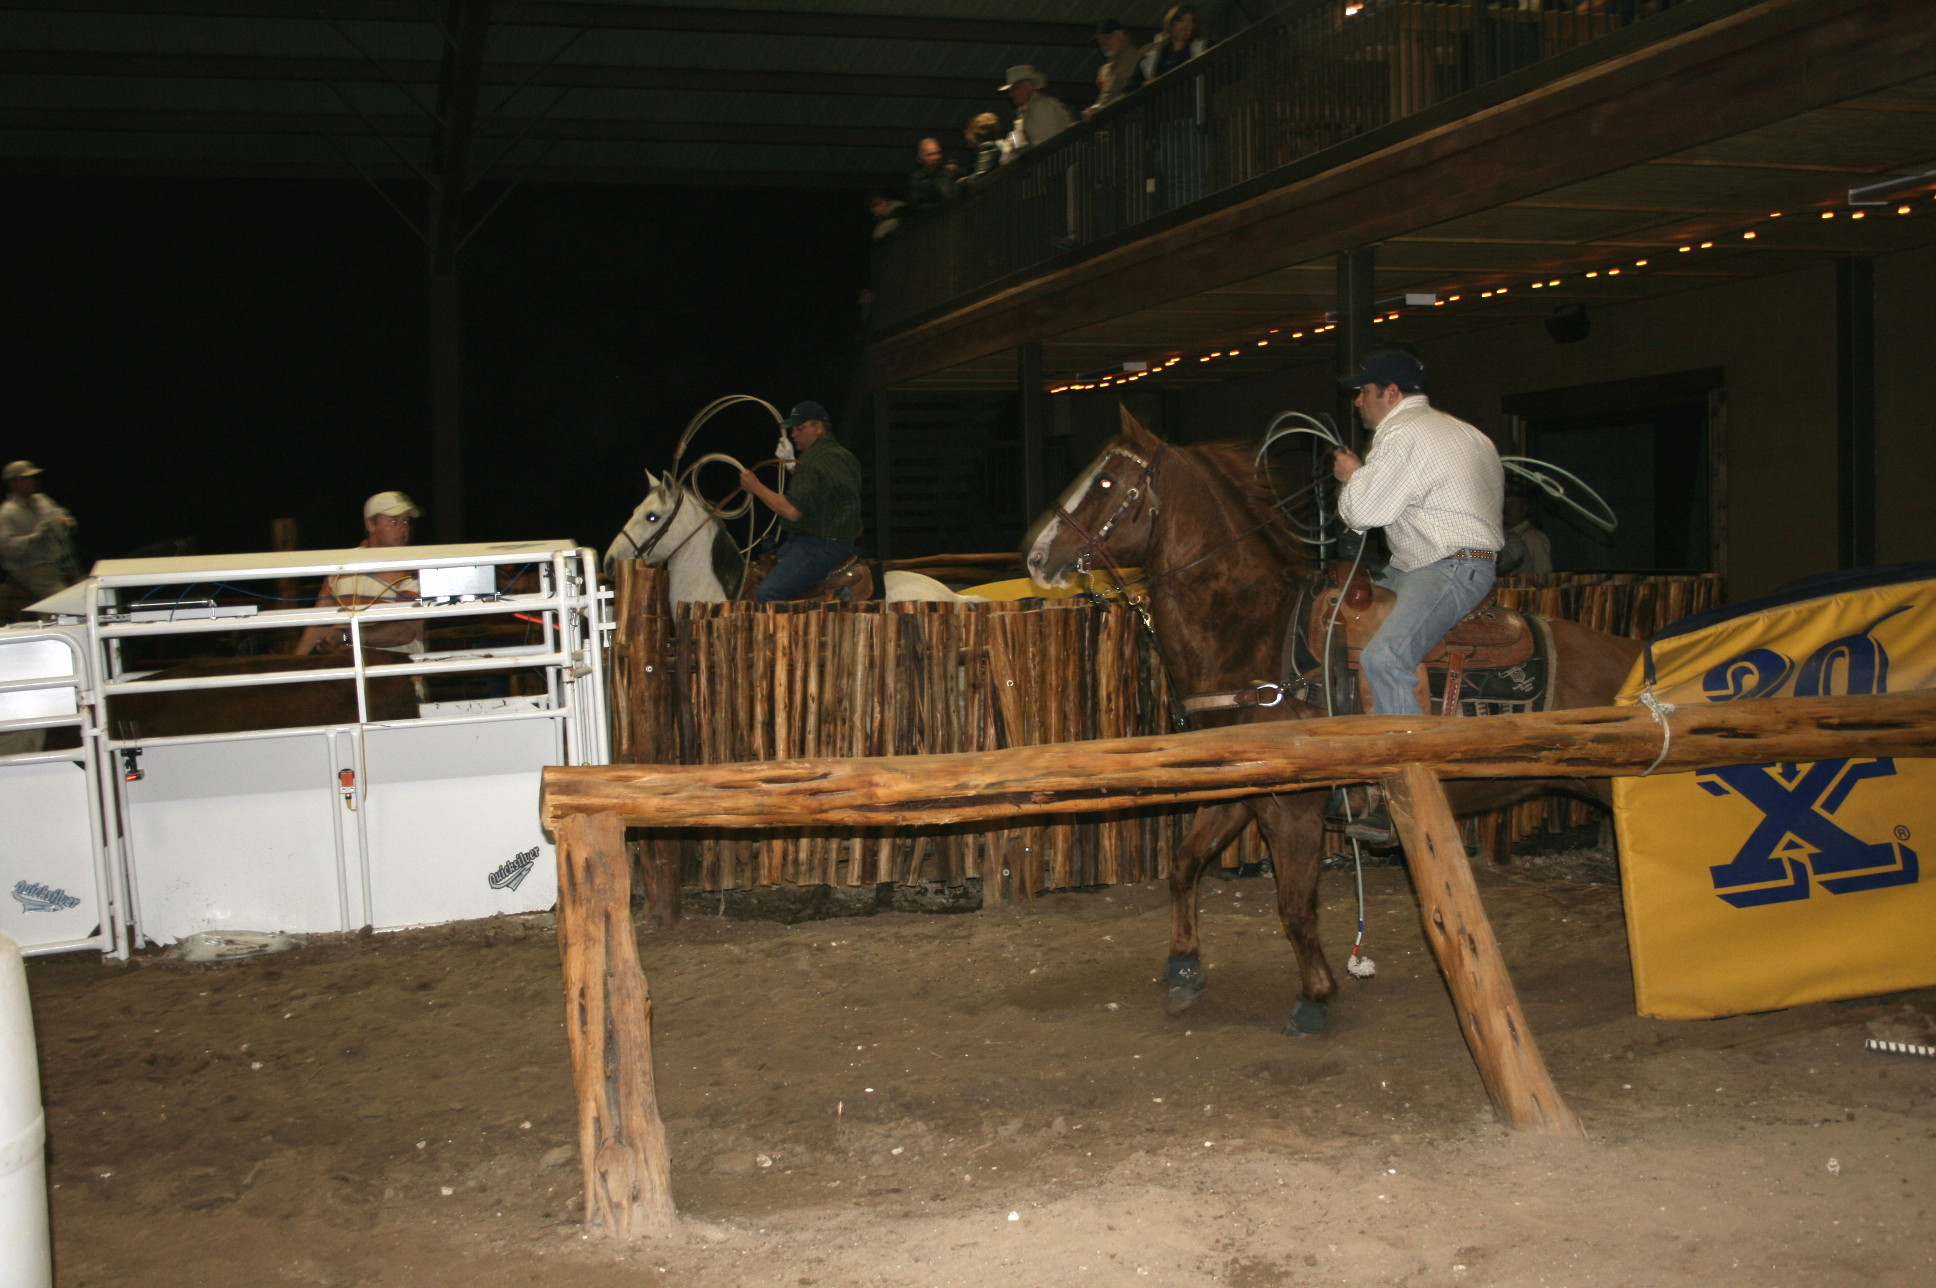 http://store.zcubes.com/C49CEADC5B984C1EAA8AC4996A38595D/Uploaded/Allcat%20Team%20Roping_1993.jpg